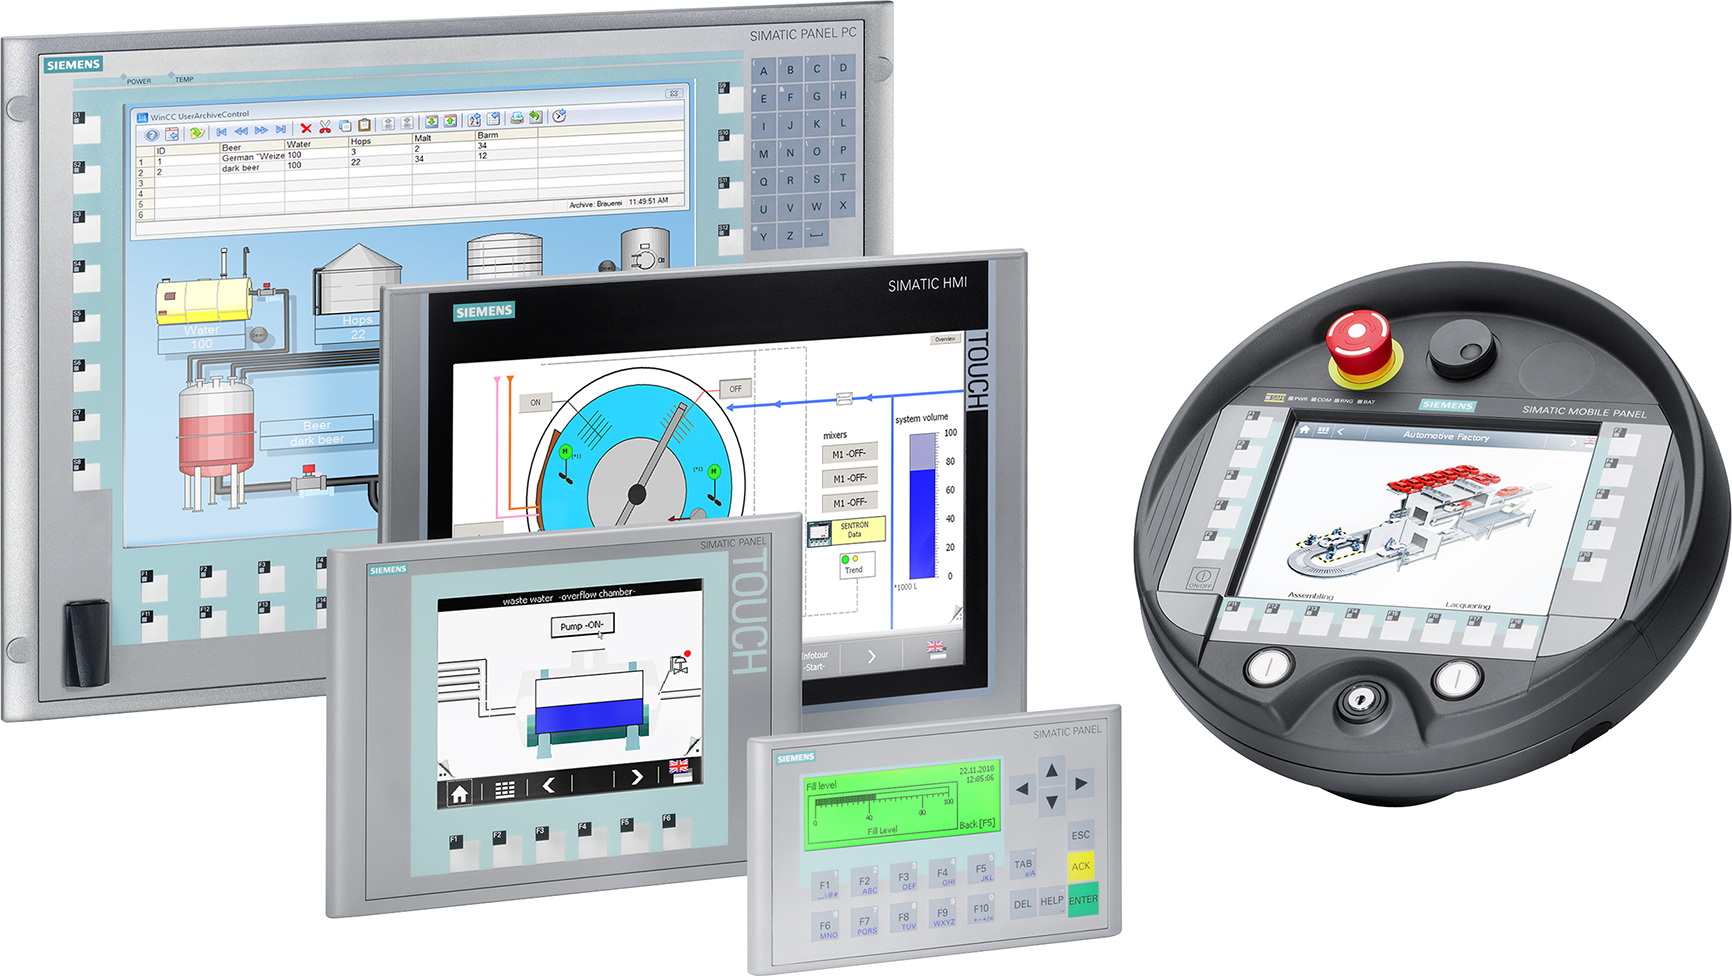 Siemens SIMATIC HMI Panel Family